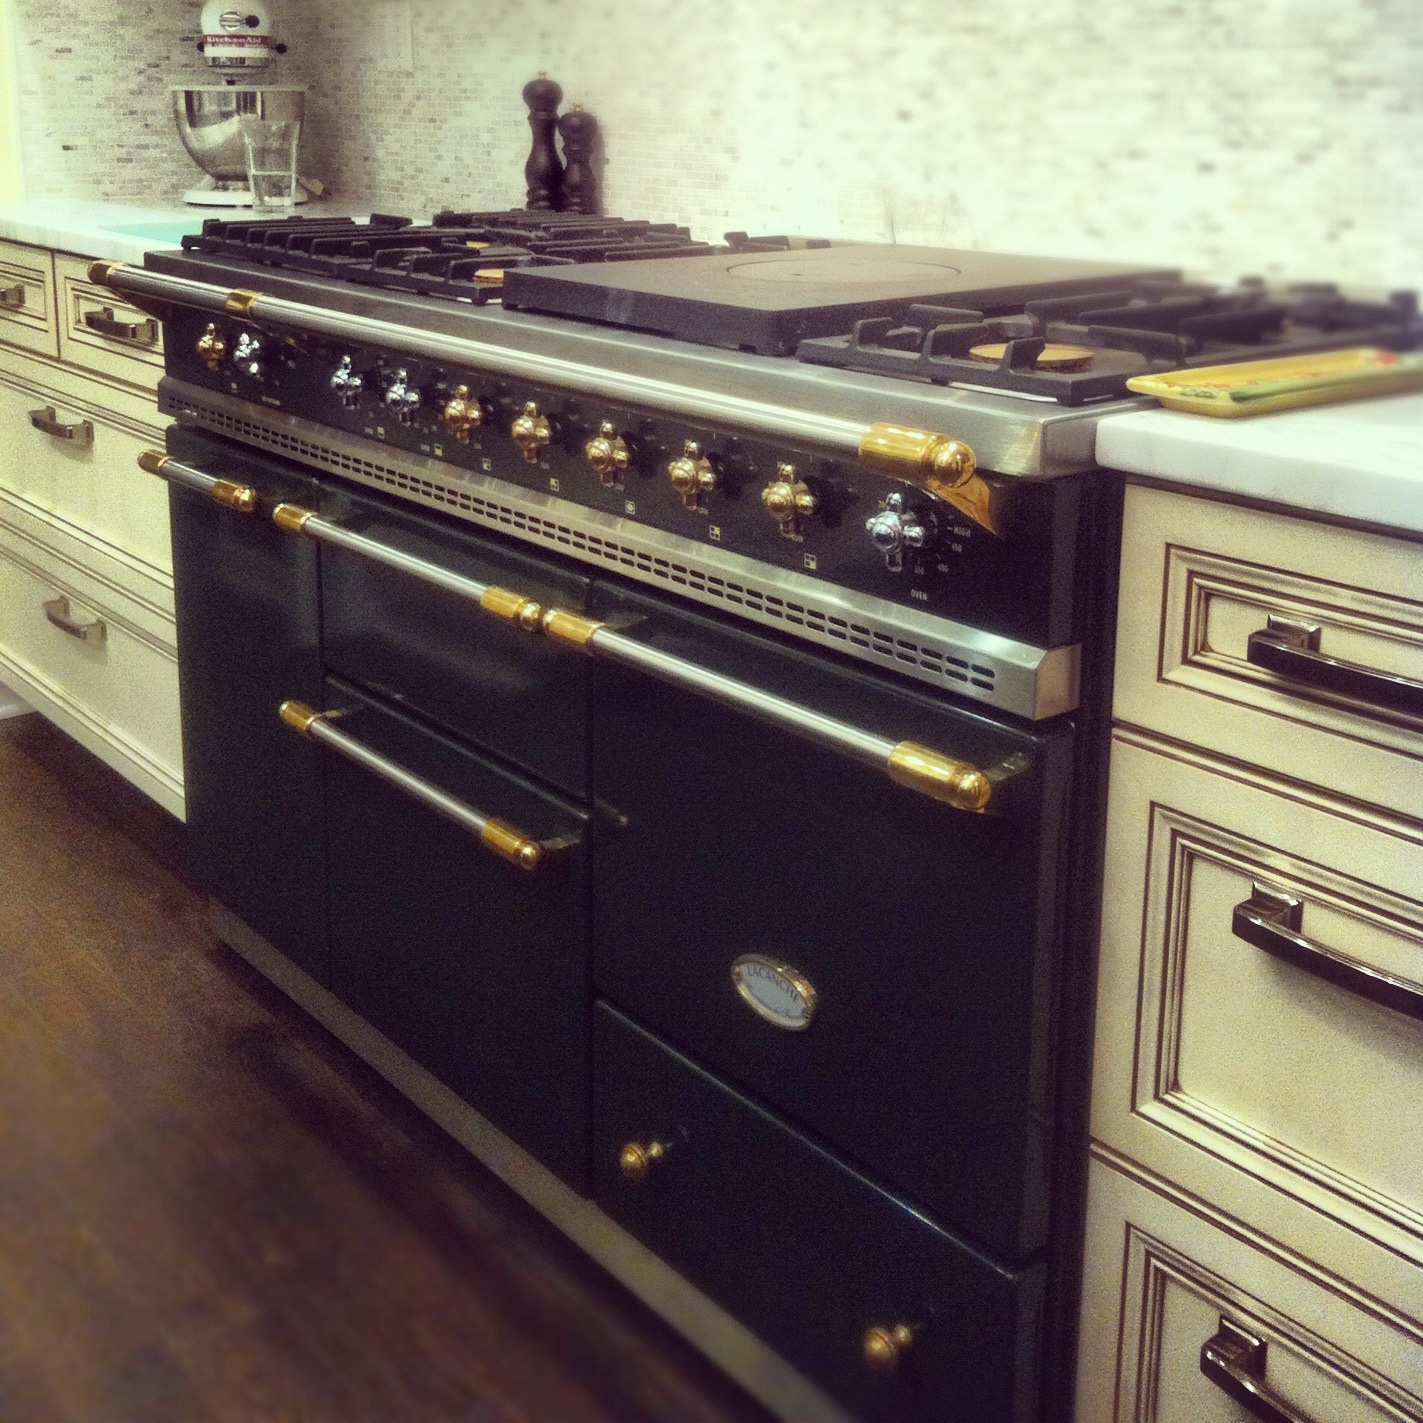 Fuel Induction Service >> Chagny 1400 Cooking Range - Art Culinaire - Lacanche USA